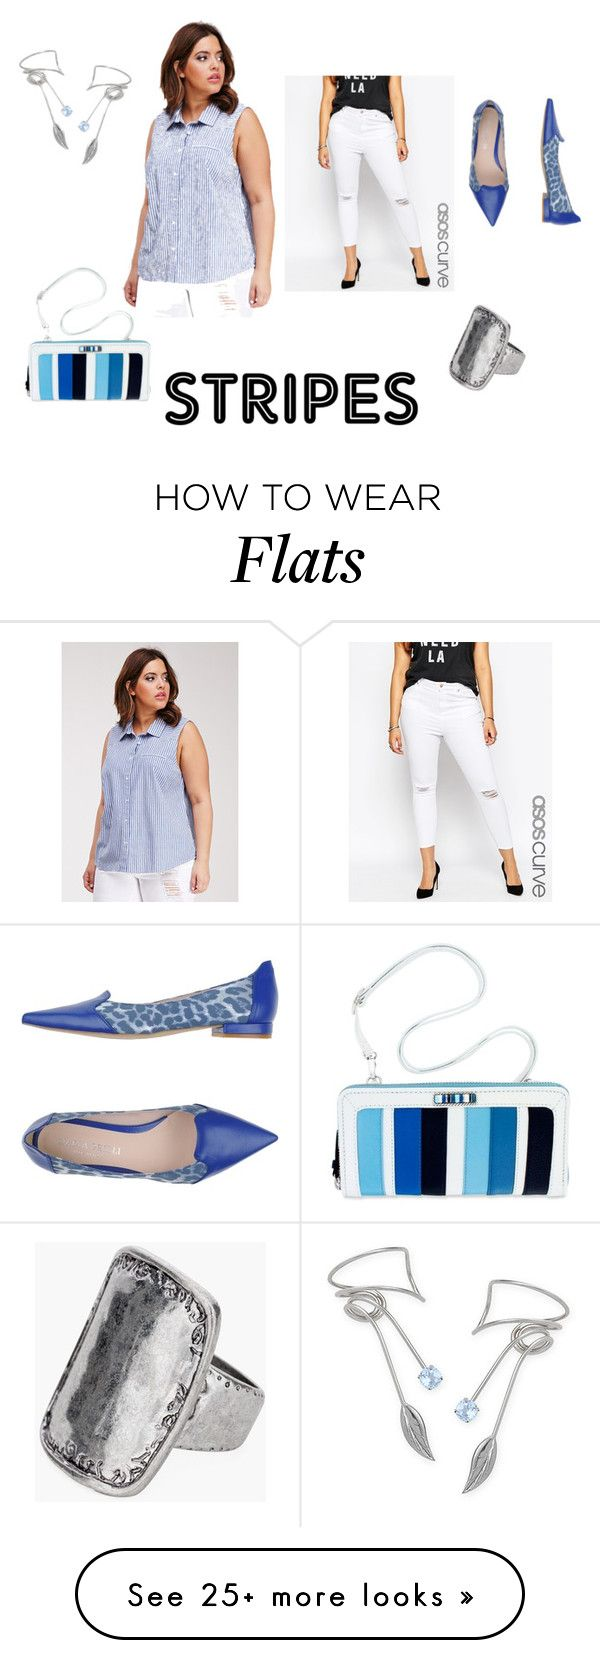 """""""Stripedy"""" by chunky-chick on Polyvore featuring Forever 21, ASOS Curve, Brighton, Nadia Grilli, Chico's and stripes"""